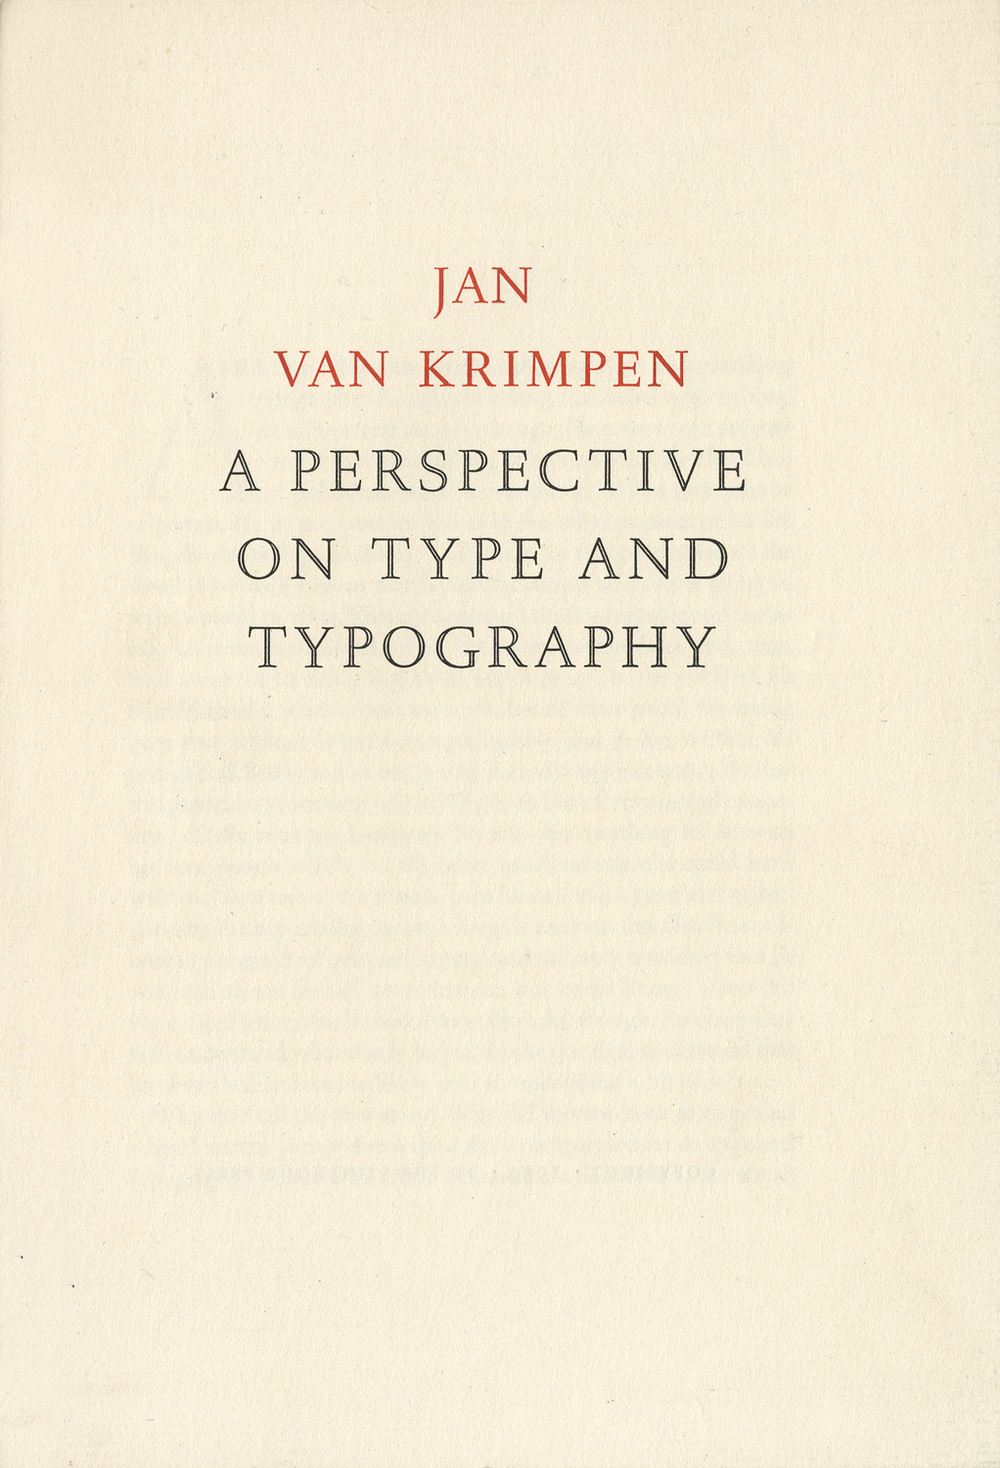 Van Krimpen_Perspective on Type and Typography_Cover.jpg